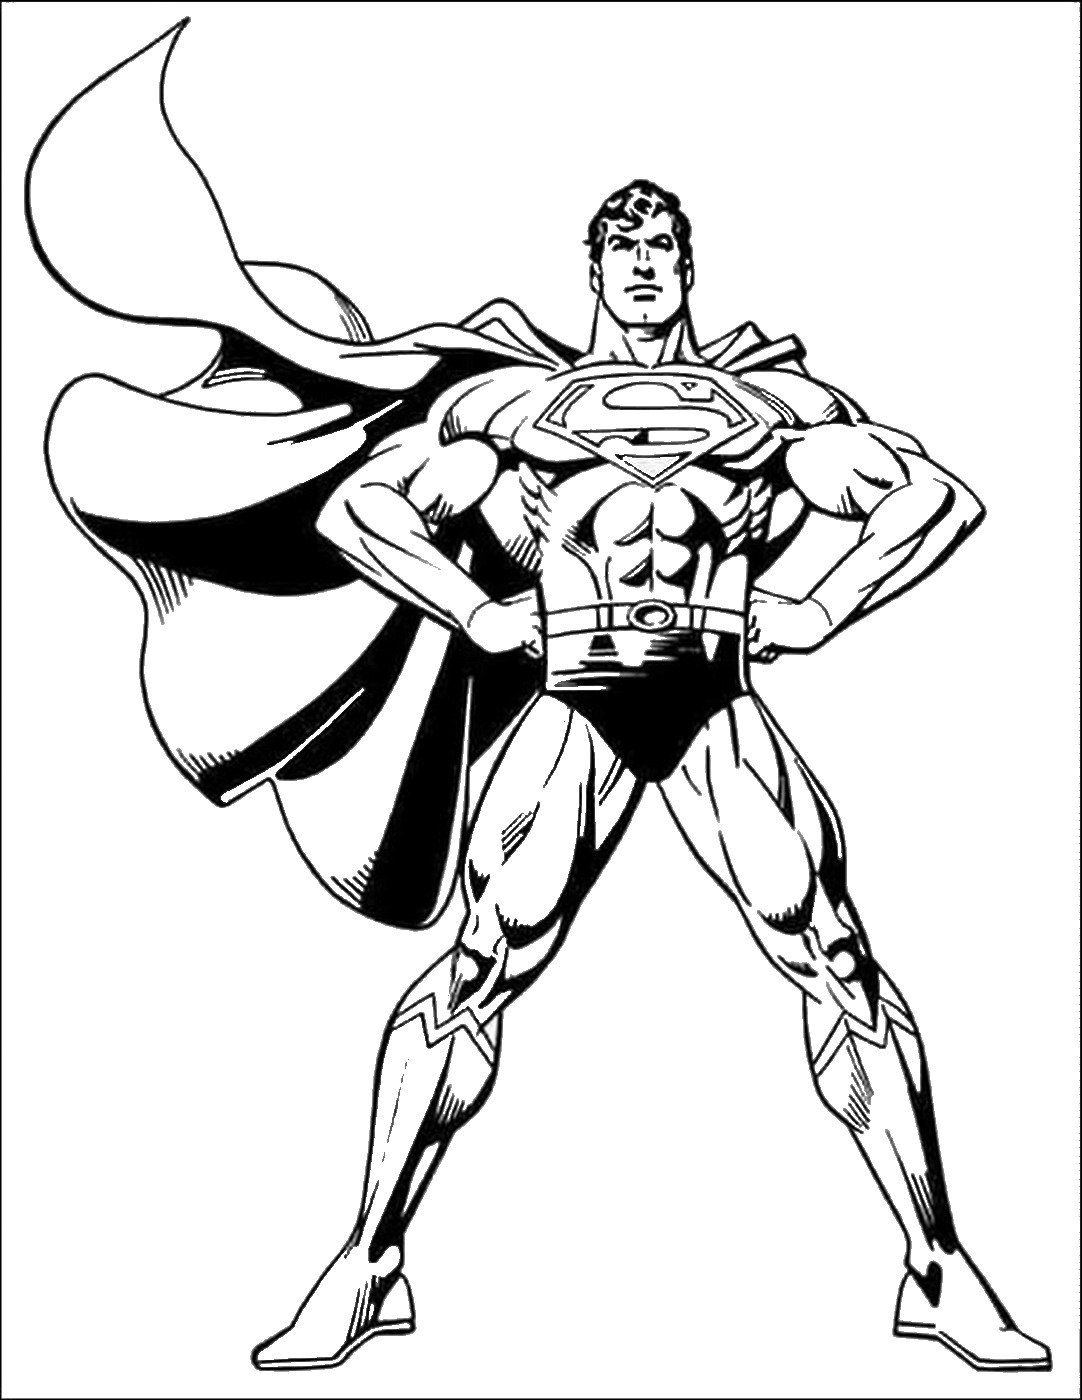 printable superman coloring pages free printable superman coloring pages for kids cool2bkids printable superman coloring pages